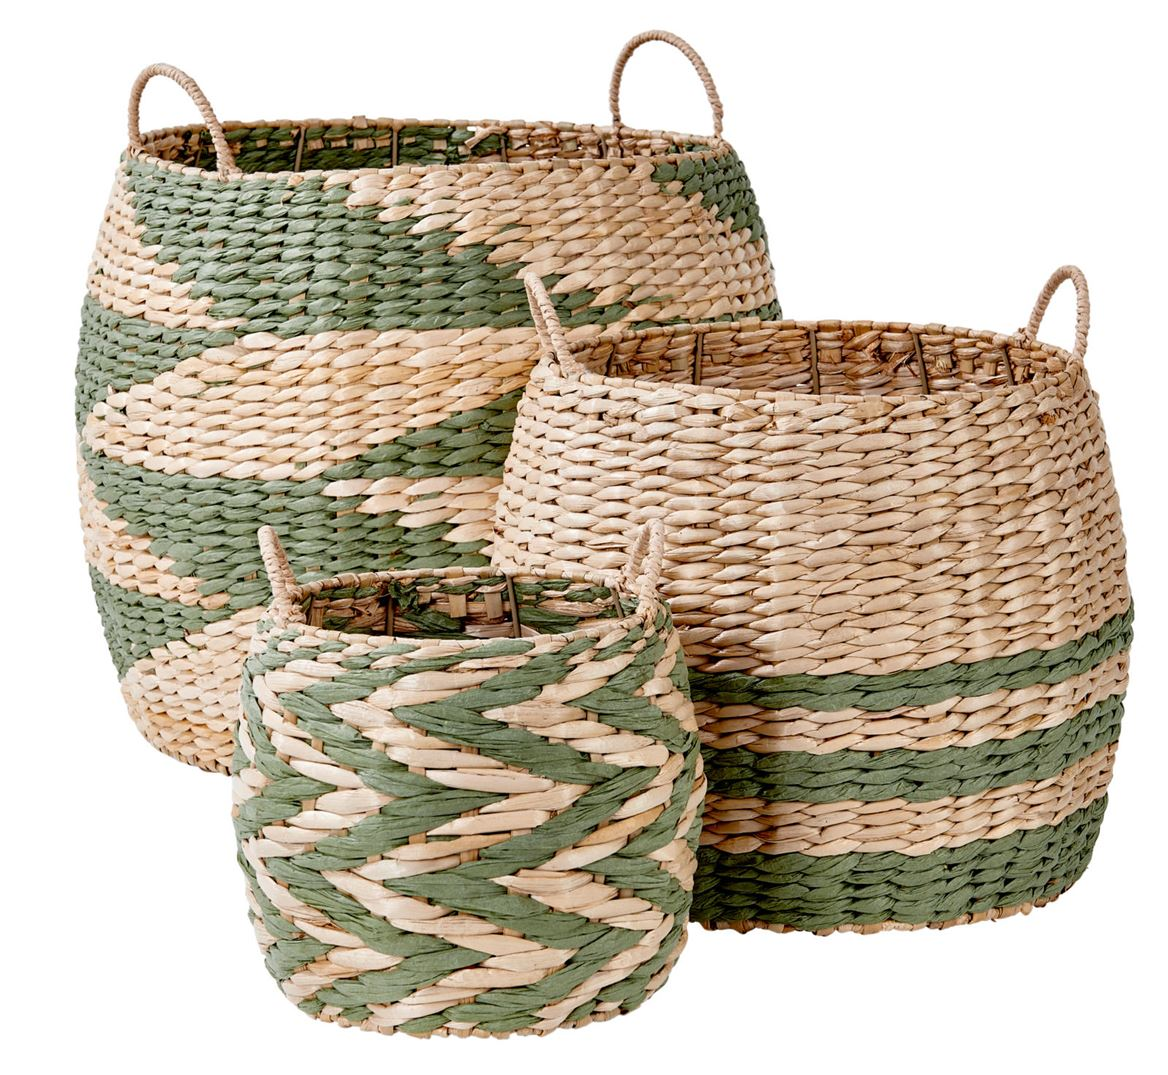 INDIAN GREEN Panier vert, naturel H 39 cm; Ø 46 cm_indian-green-panier-vert,-naturel-h-39-cm;-ø-46-cm